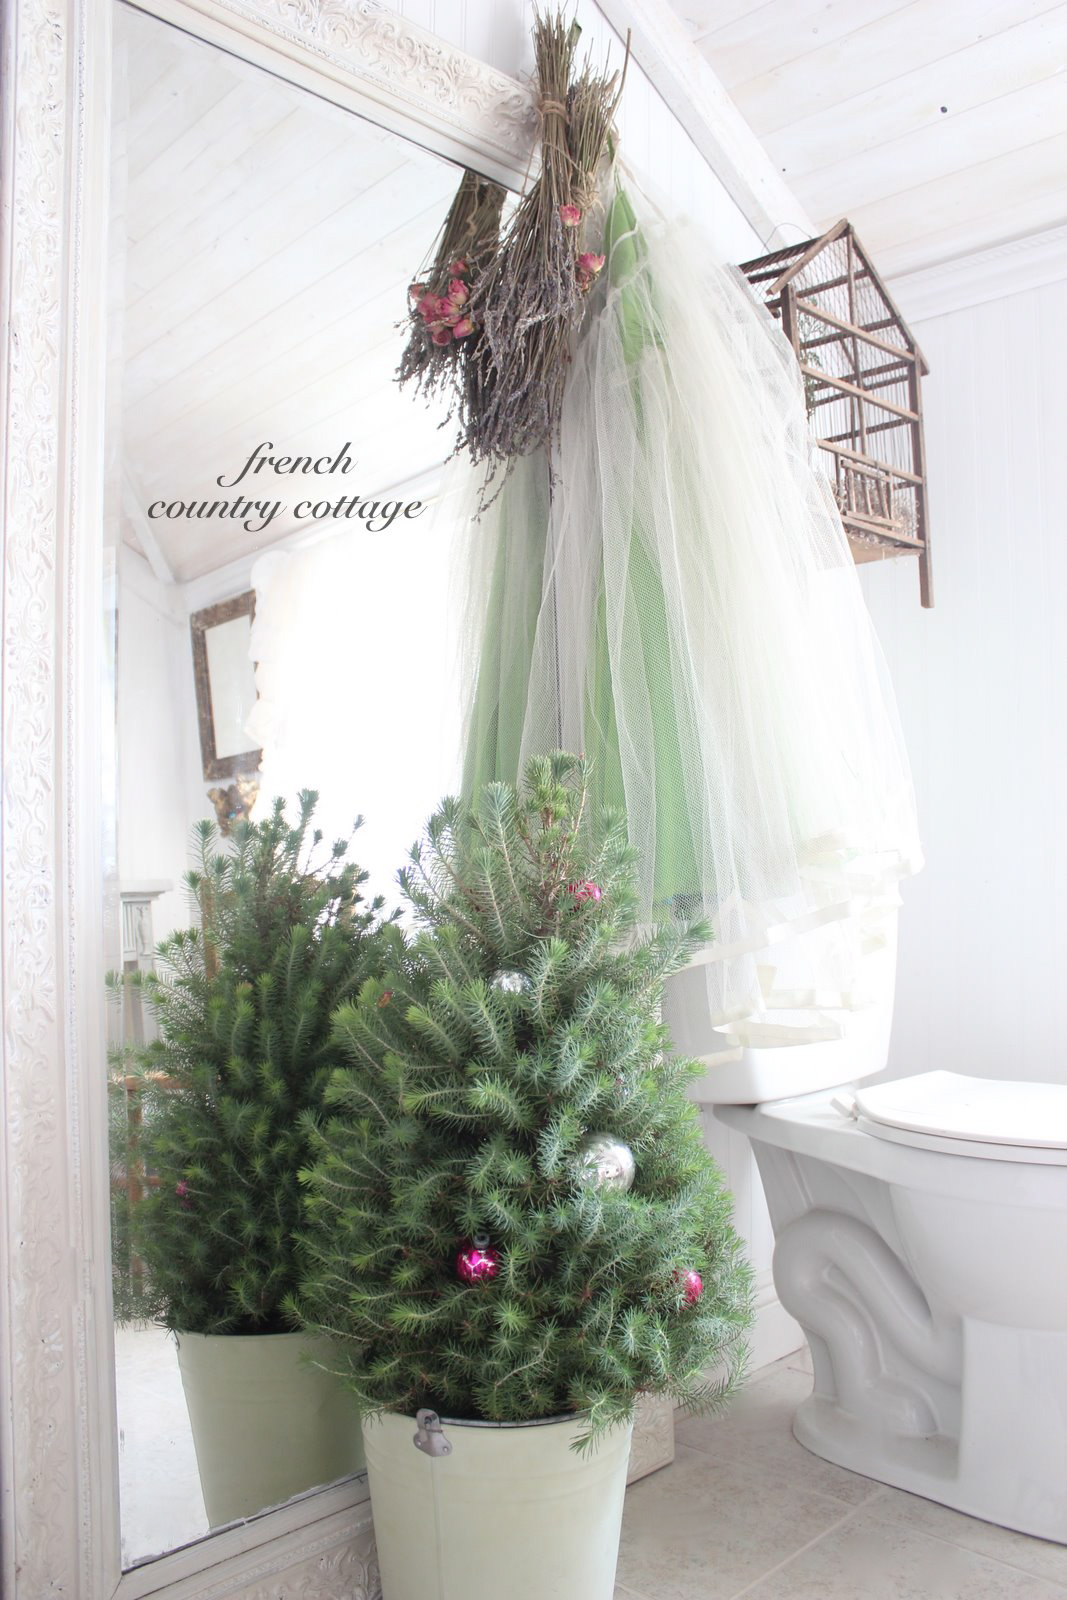 A Little Christmas French Country Cottage